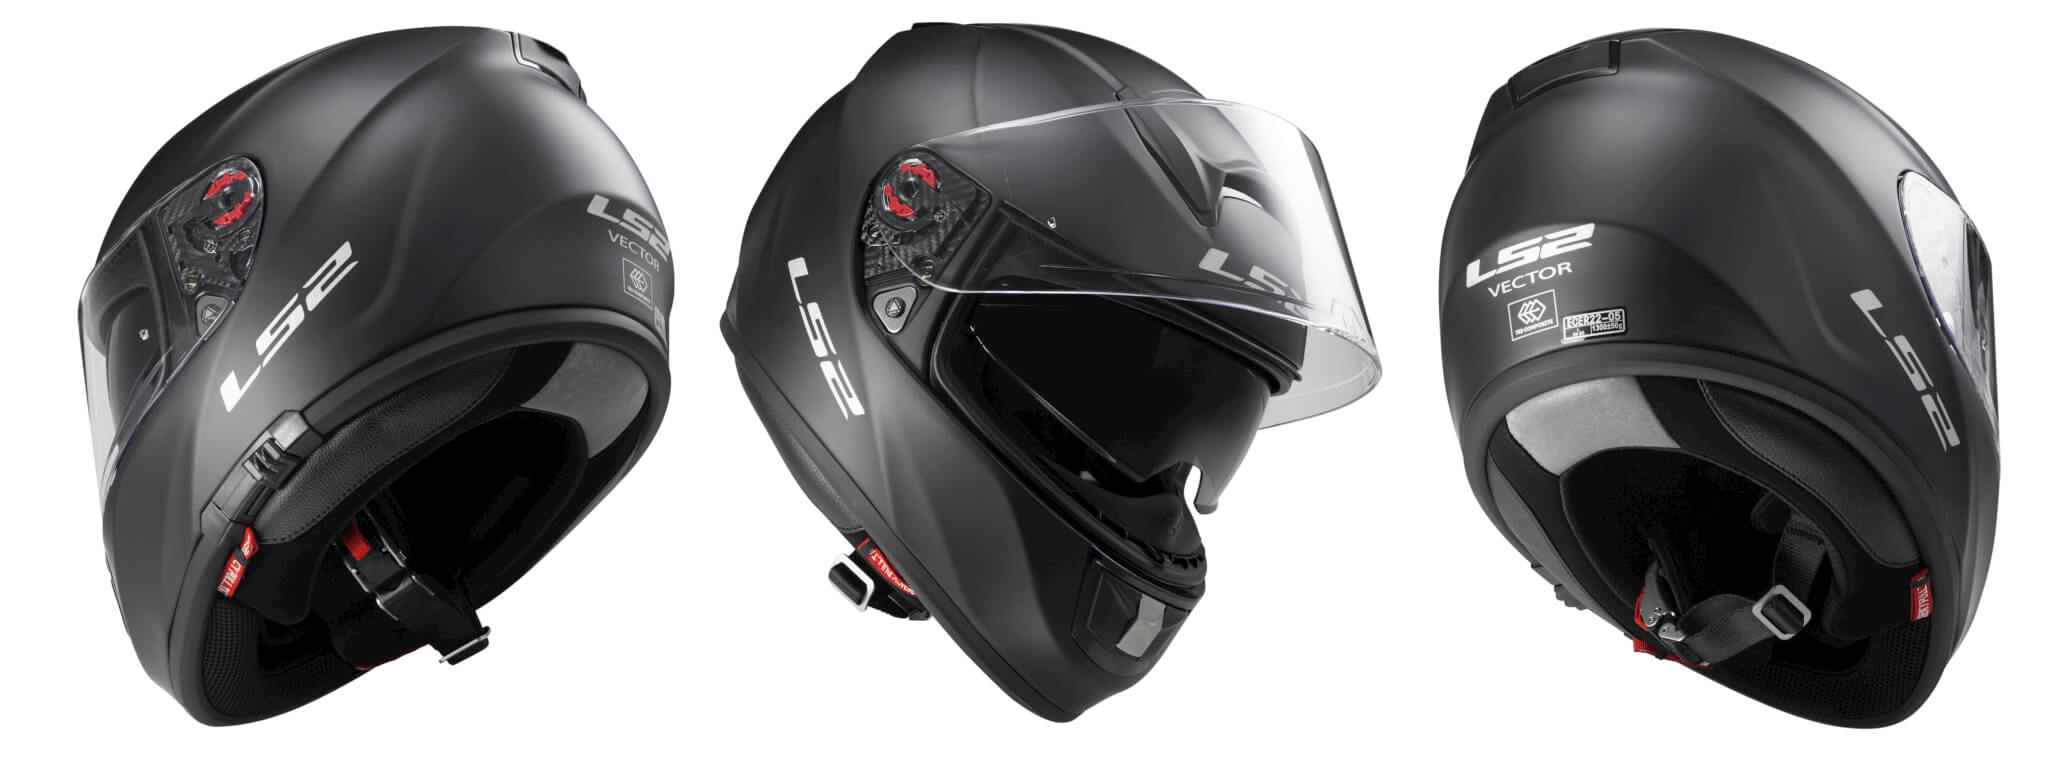 ls2 ff397 motor helm review